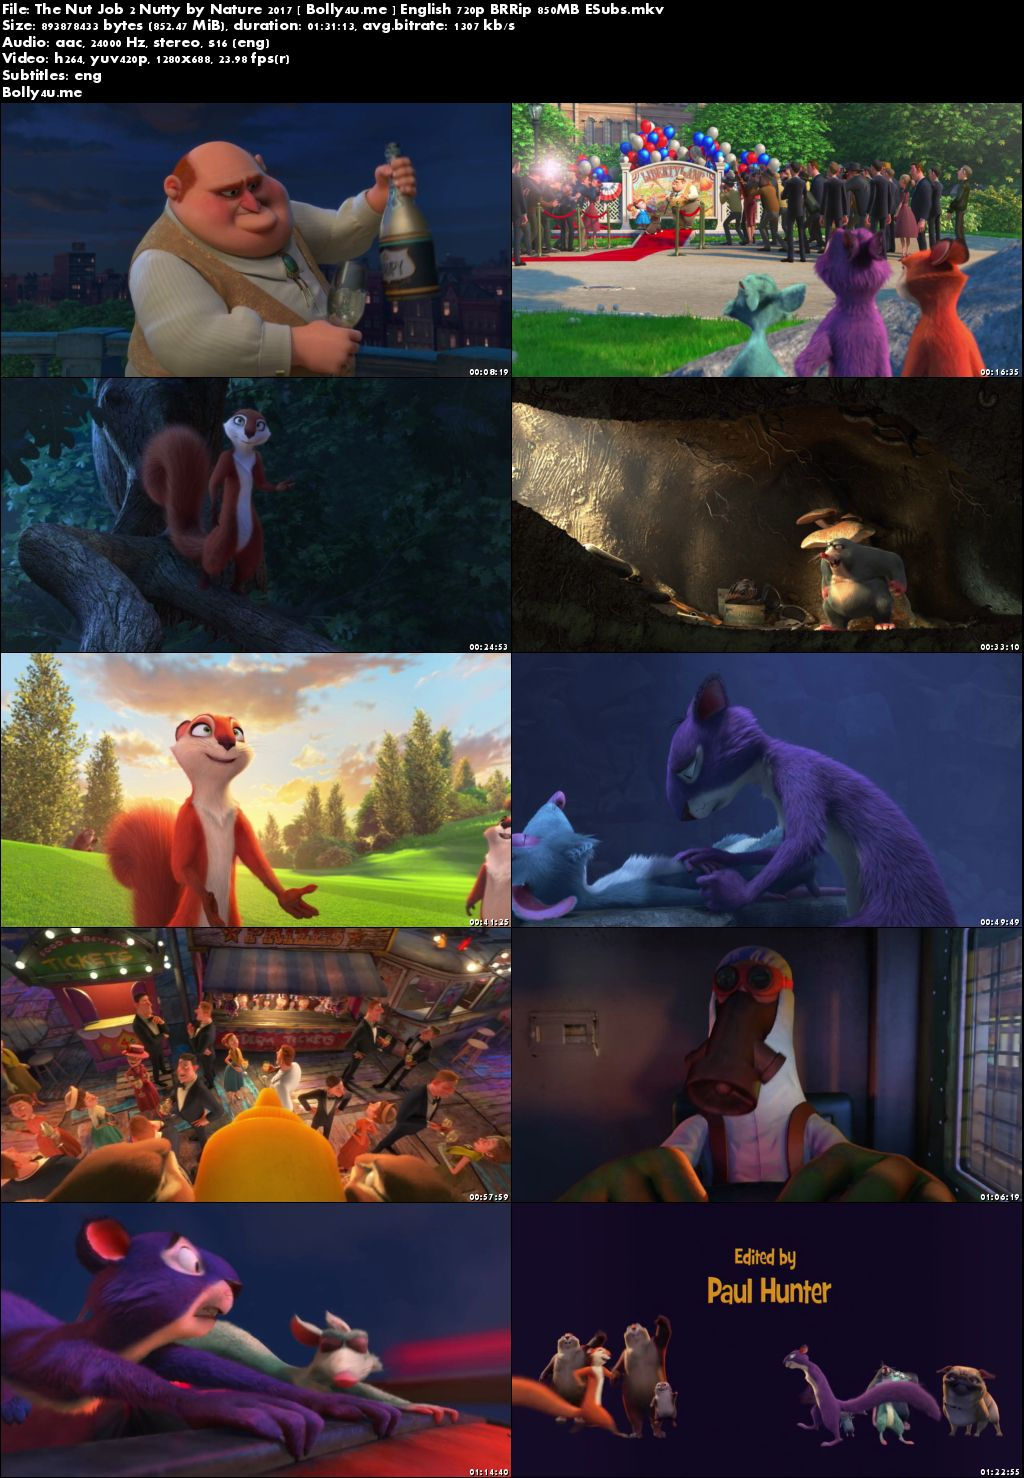 The Nut Job 2 Nutty By Nature 2017 BRRip 850MB English 720p ESubs Download